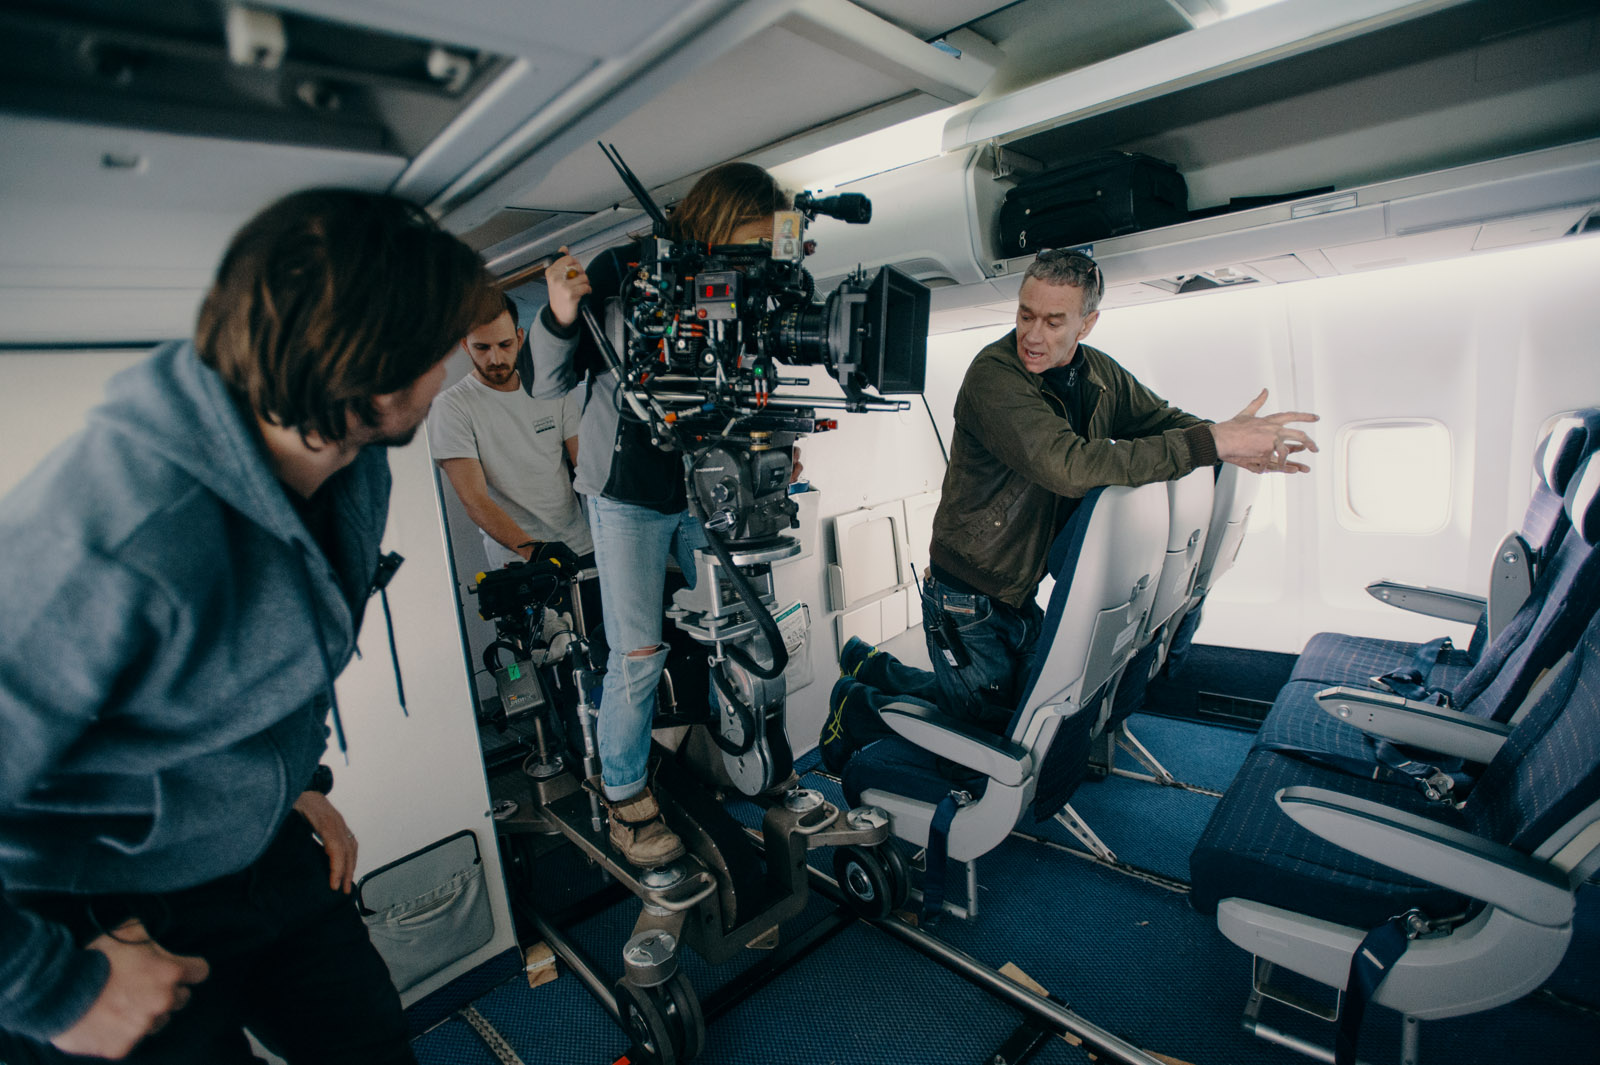 Cinematographer Oona Menges_1st AD_Gaffer - Behind the scenes - Inside Airplane - London - photo credit Ashley Kingsbury